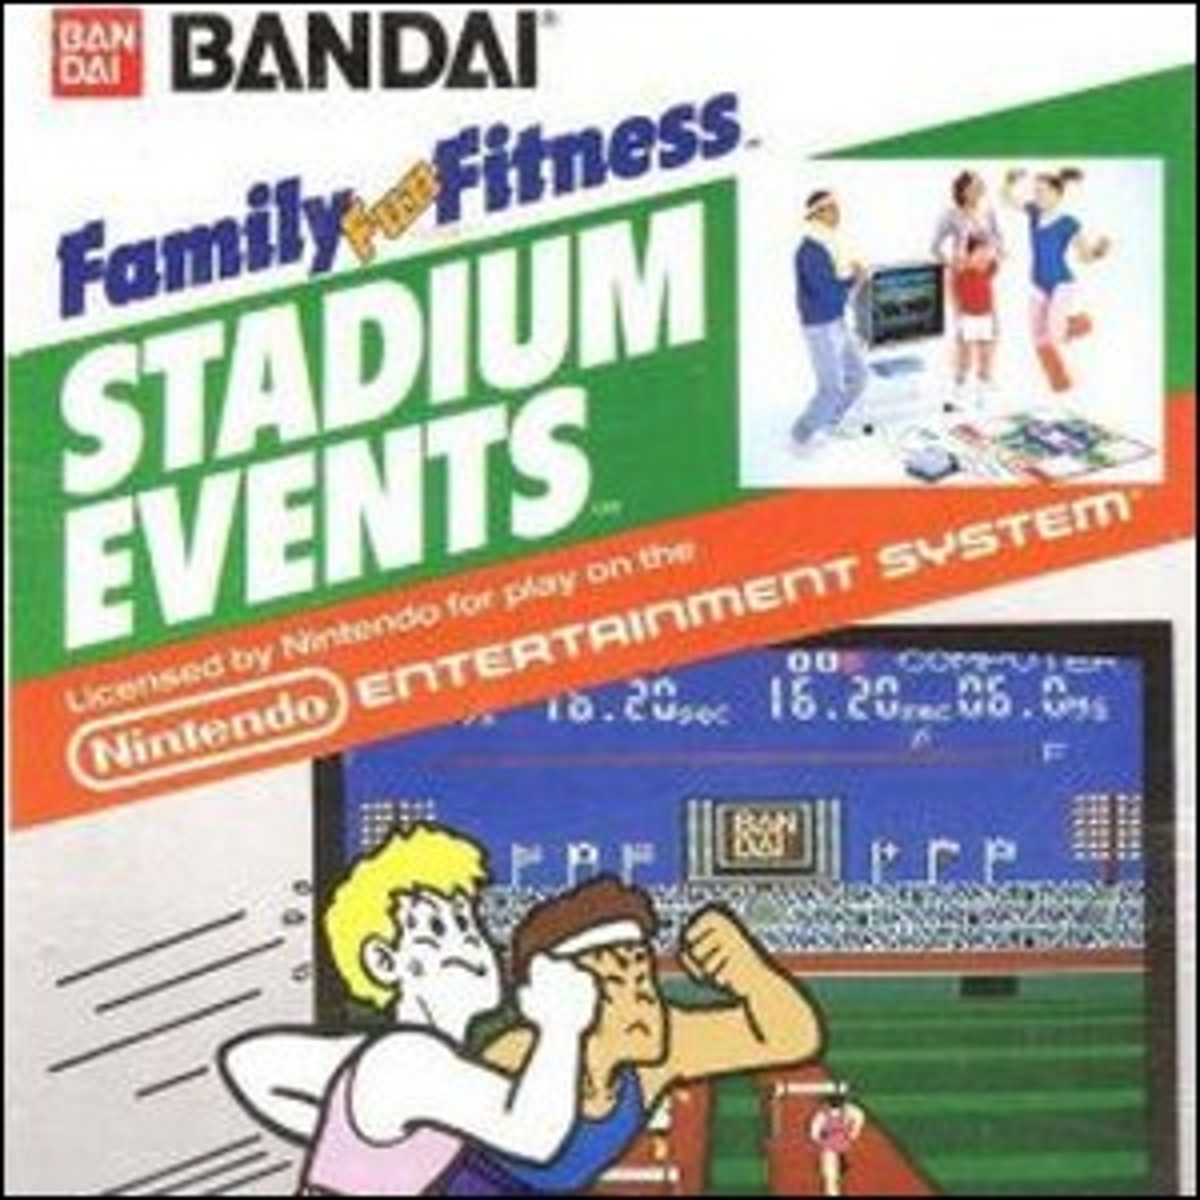 The front cover of the NES Stadium Events game.